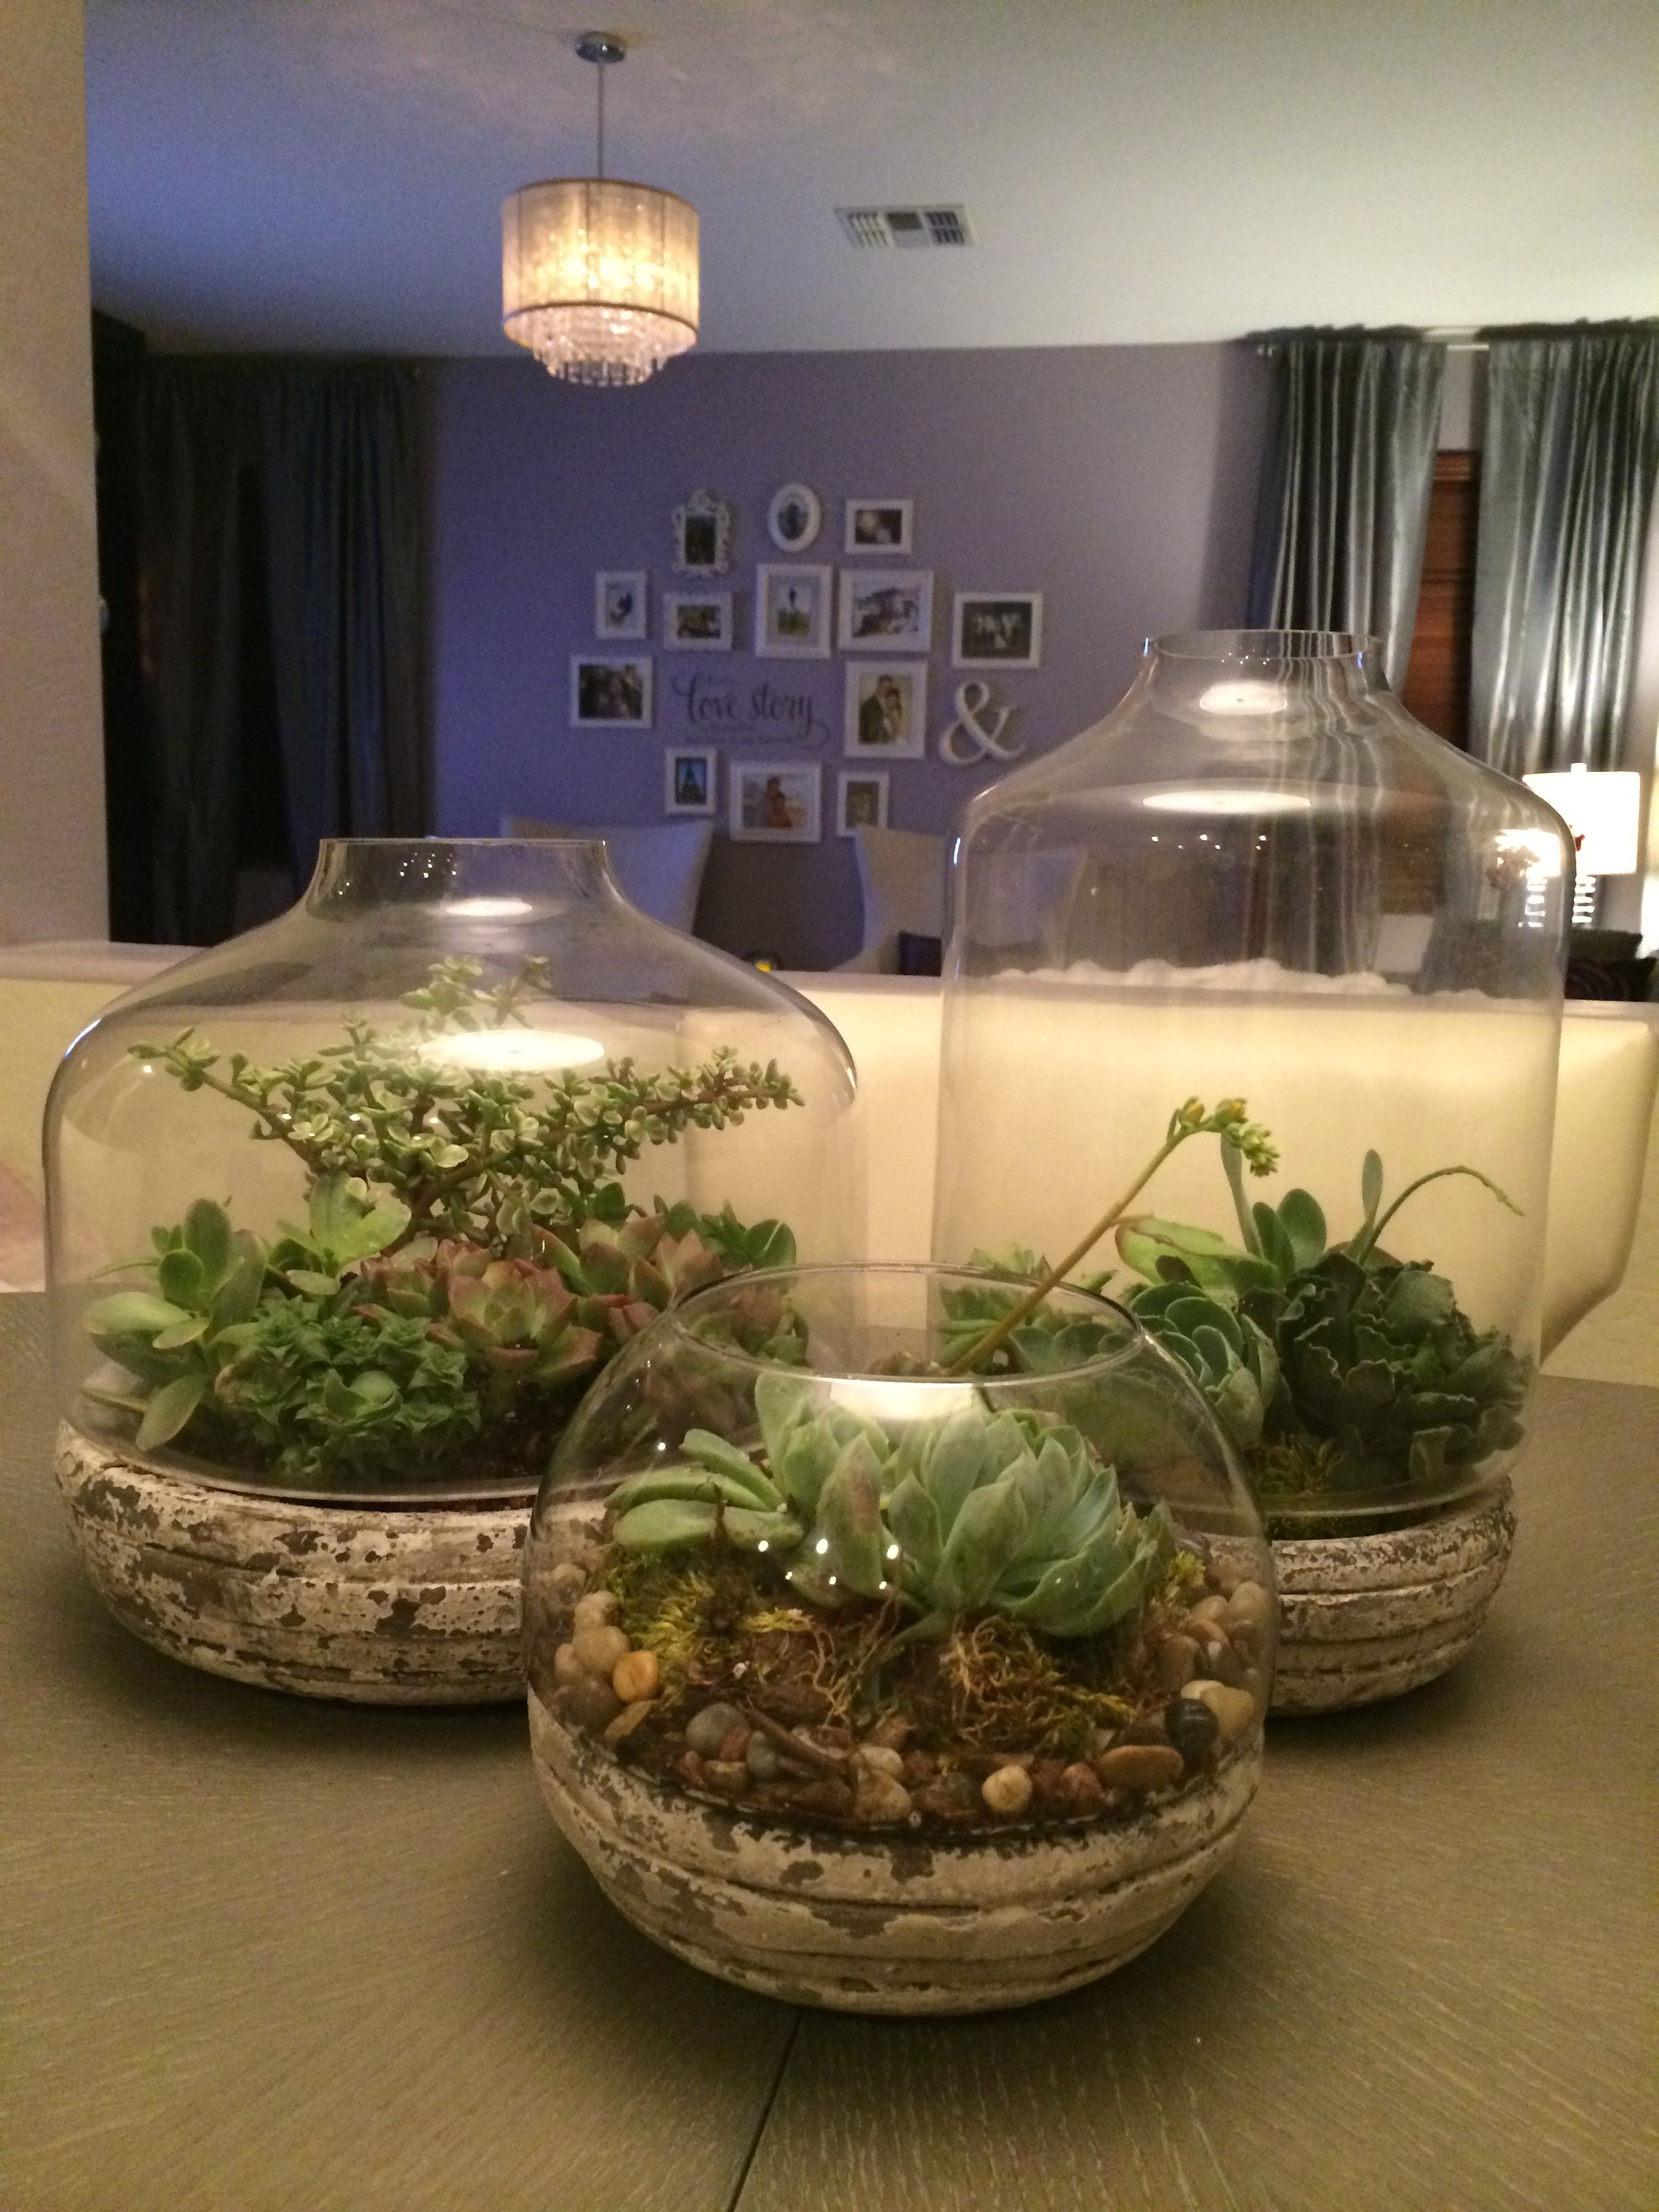 Dining Table Centerpiece Using Succulents From West Elm Home Depot And Terrariums From Wo Dining Room Centerpiece Dining Table Decor Dining Table Centerpiece